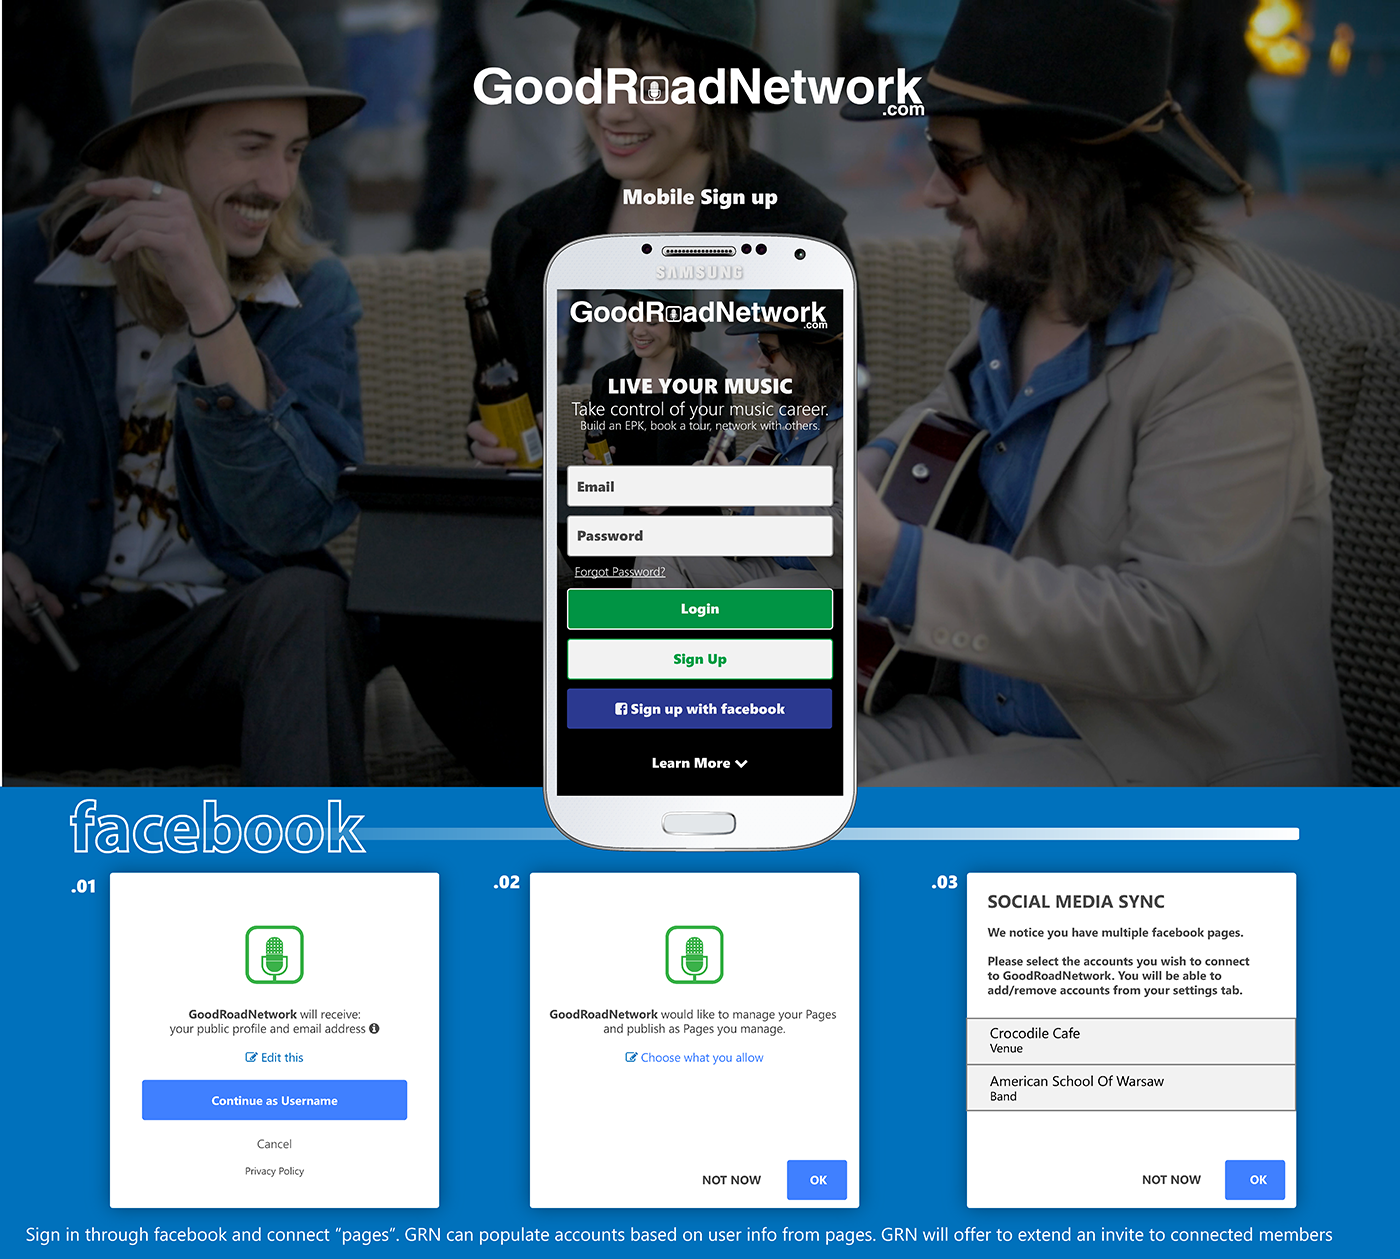 Mobile first Application development project for Start-up called GoodRoadNetwork.